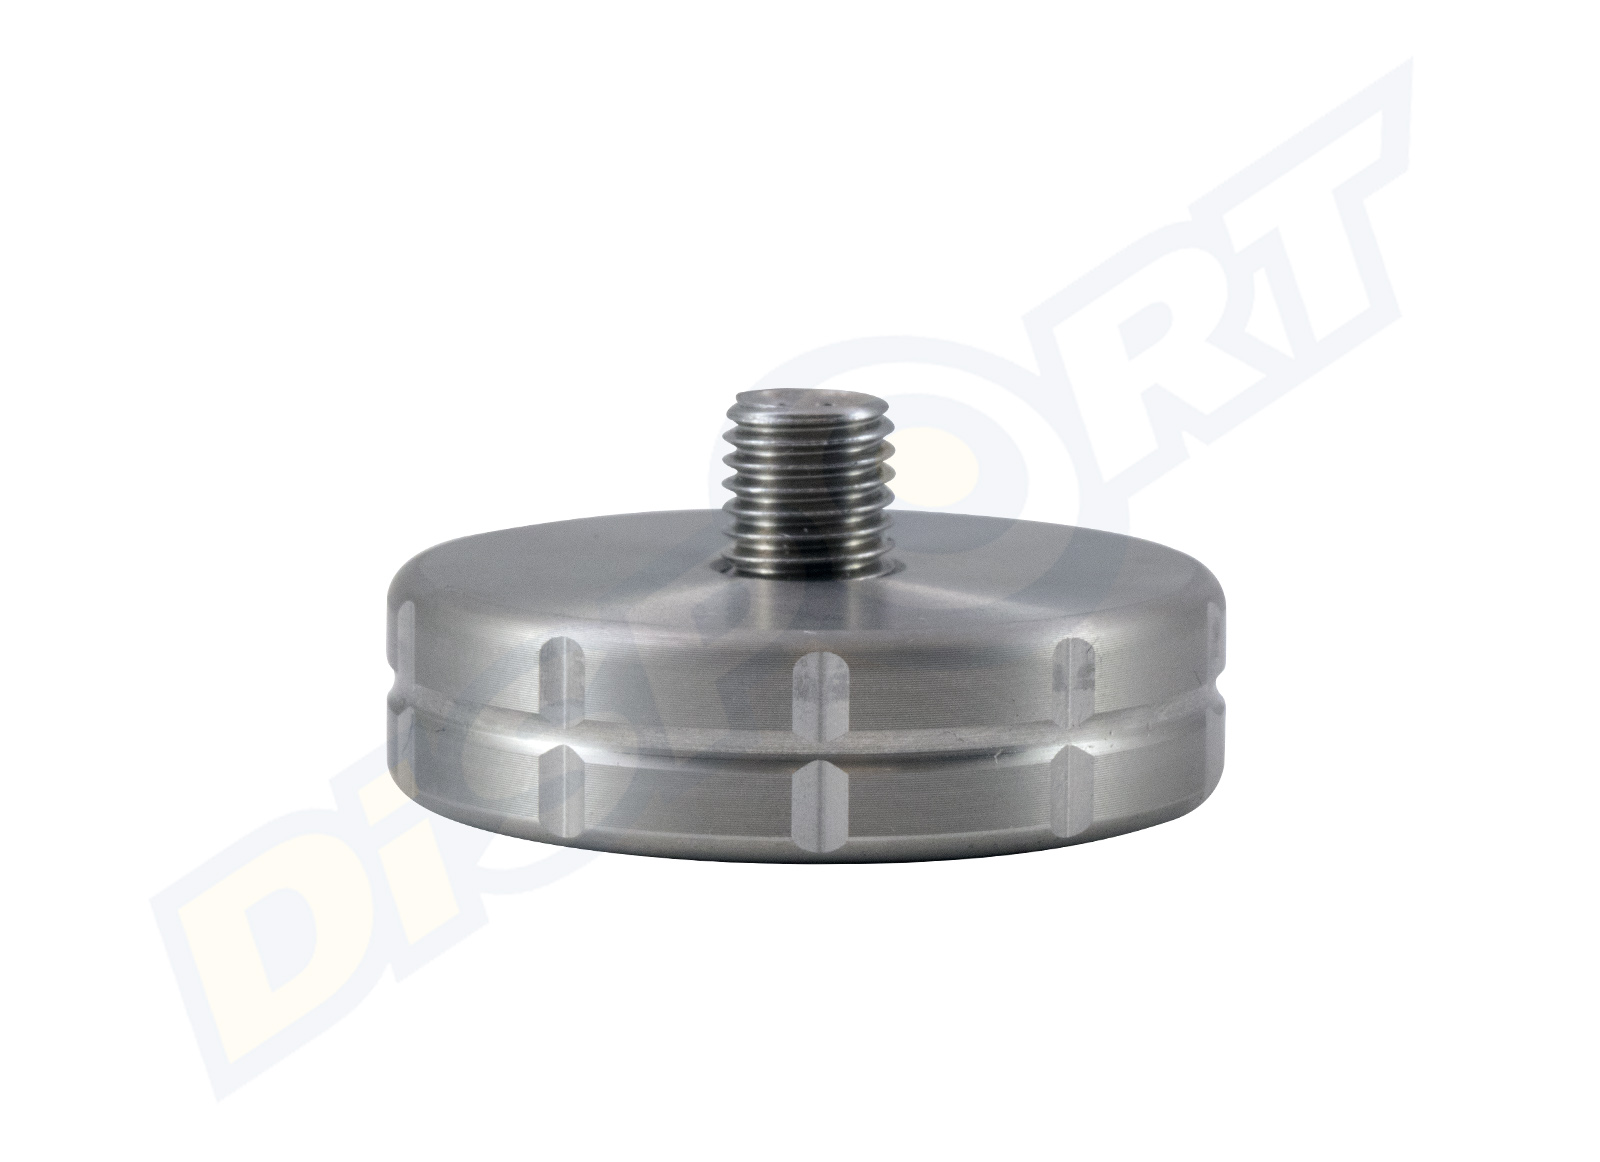 AXCEL PESI PER STABILIZZATORE 3OZ 1.50'' STAINLESS STEEL